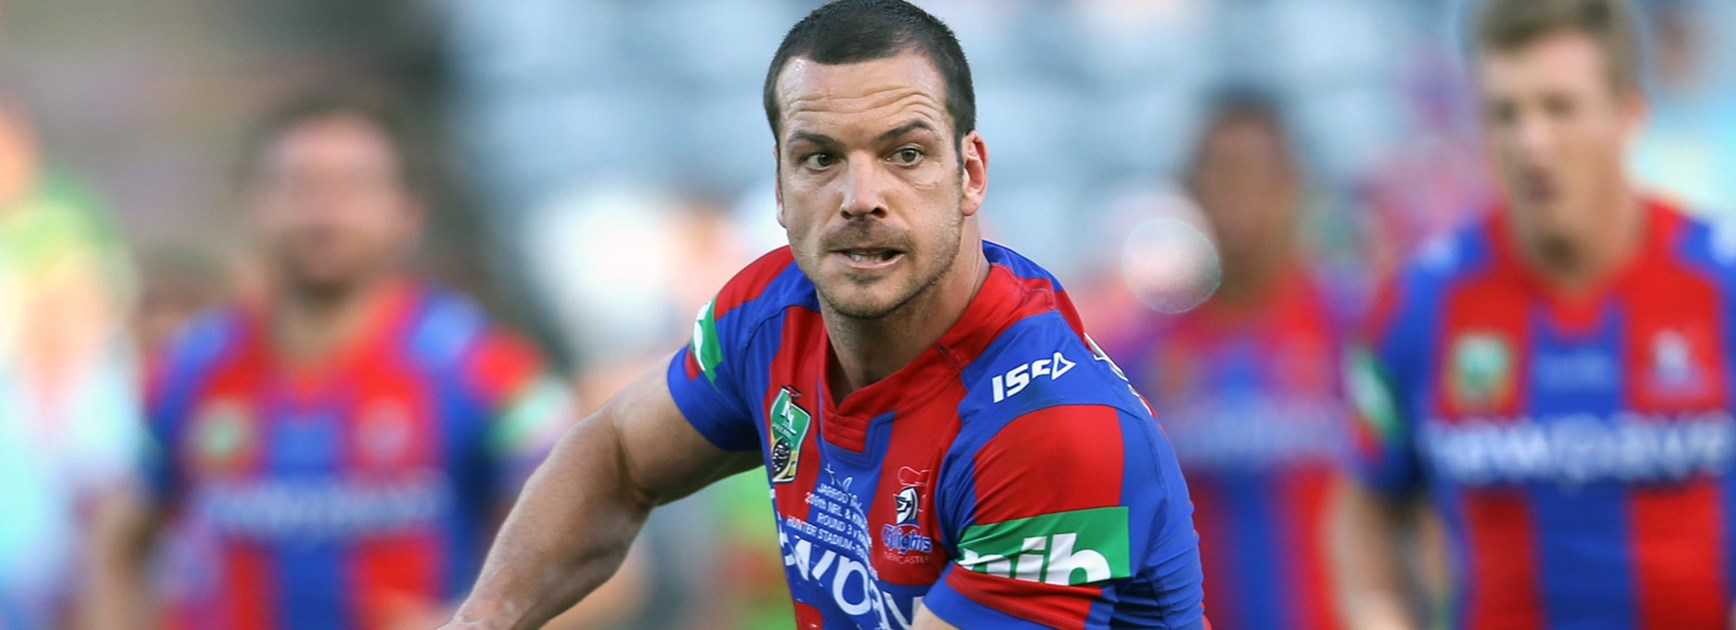 Knights five-eighth Jarrod Mullen in is 200th NRL game against the Raiders in Round 3.